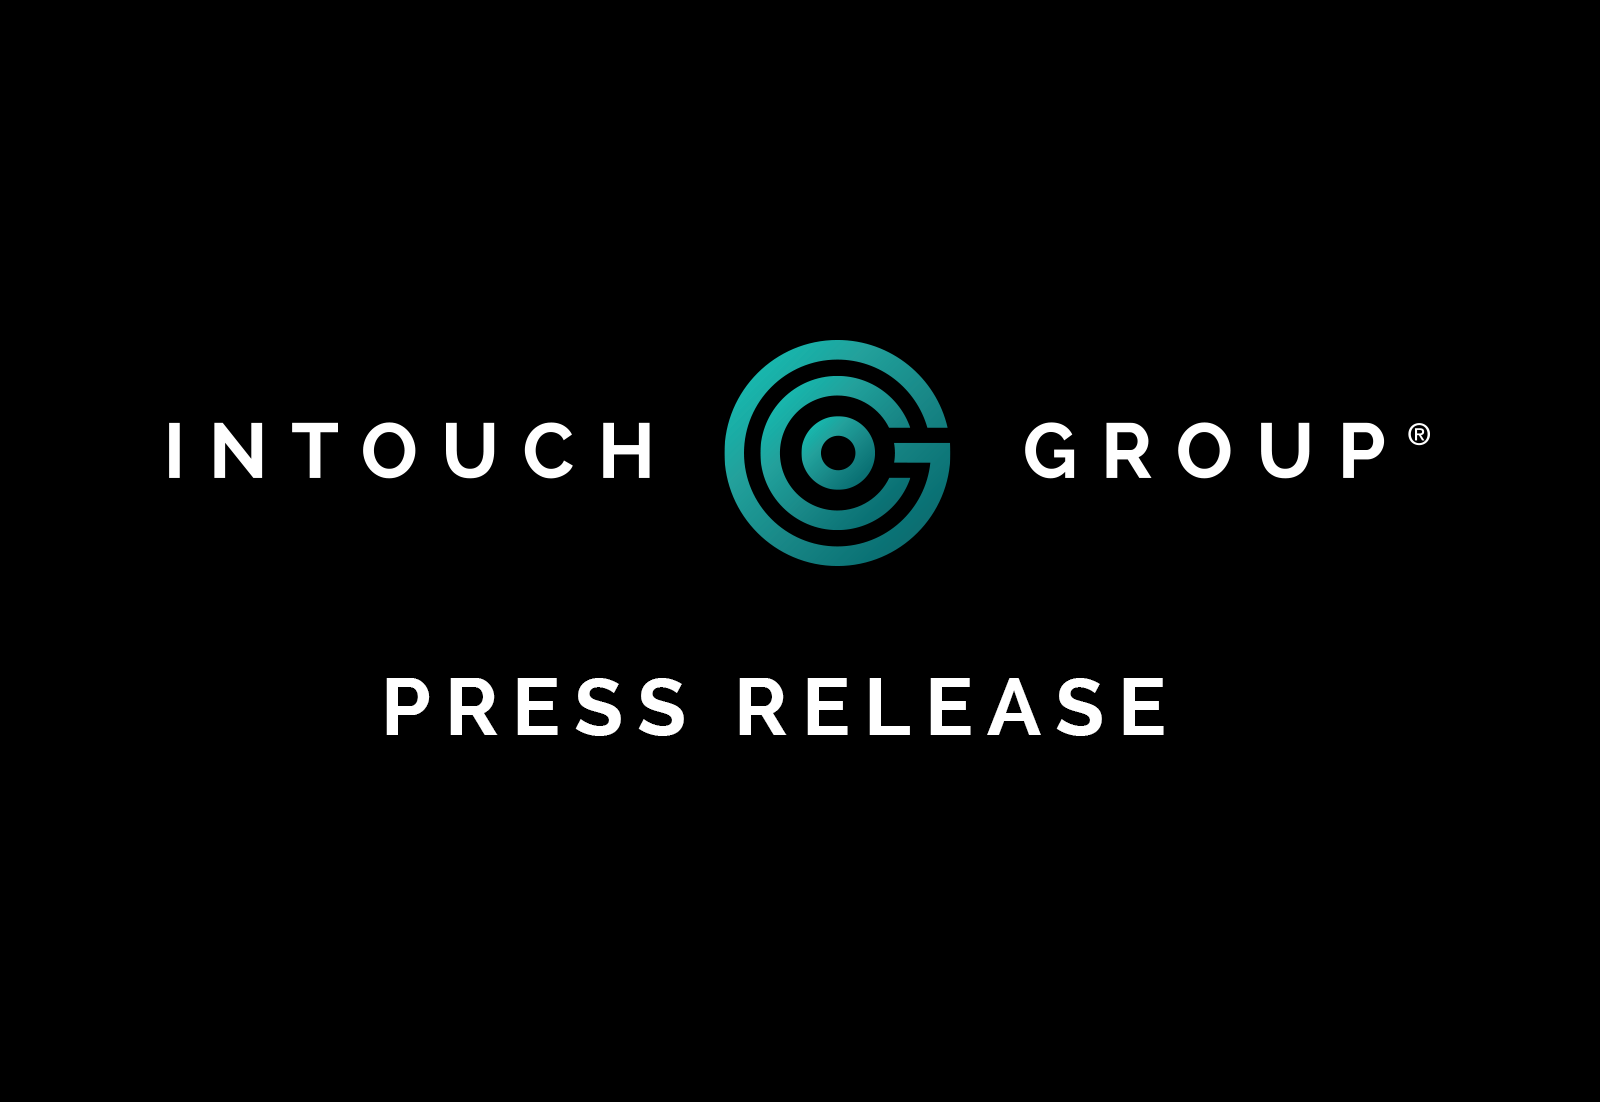 Intouch Group Announces Anti-COVID-19 Partnership with Nonprofit Heart to Heart International